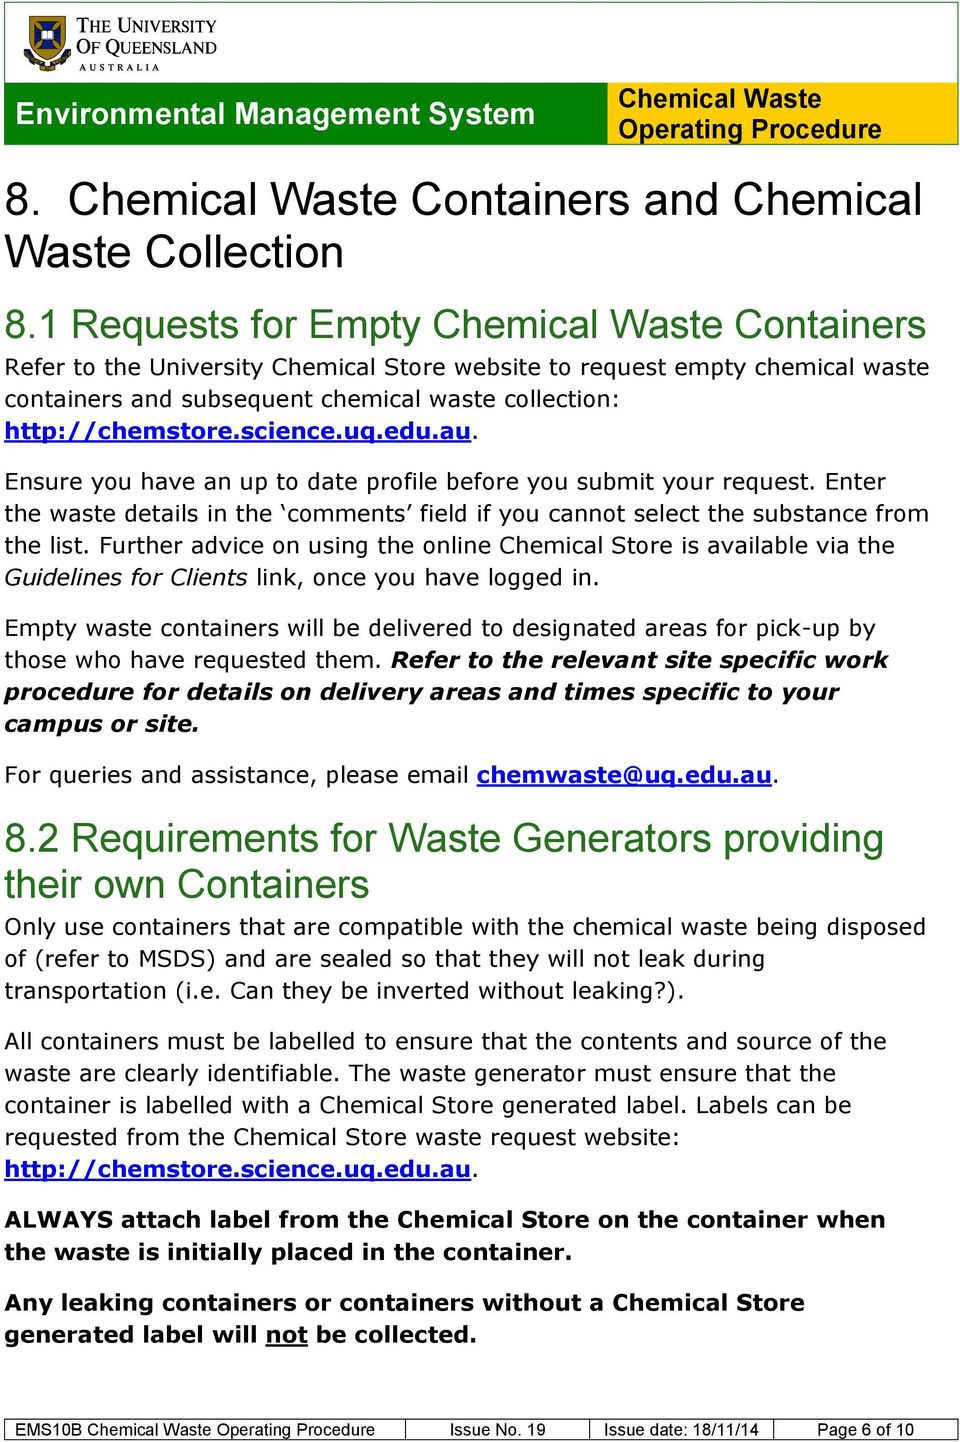 Ensure you have an up to date profile before you submit your request. Enter the waste details in the comments field if you cannot select the substance from the list.